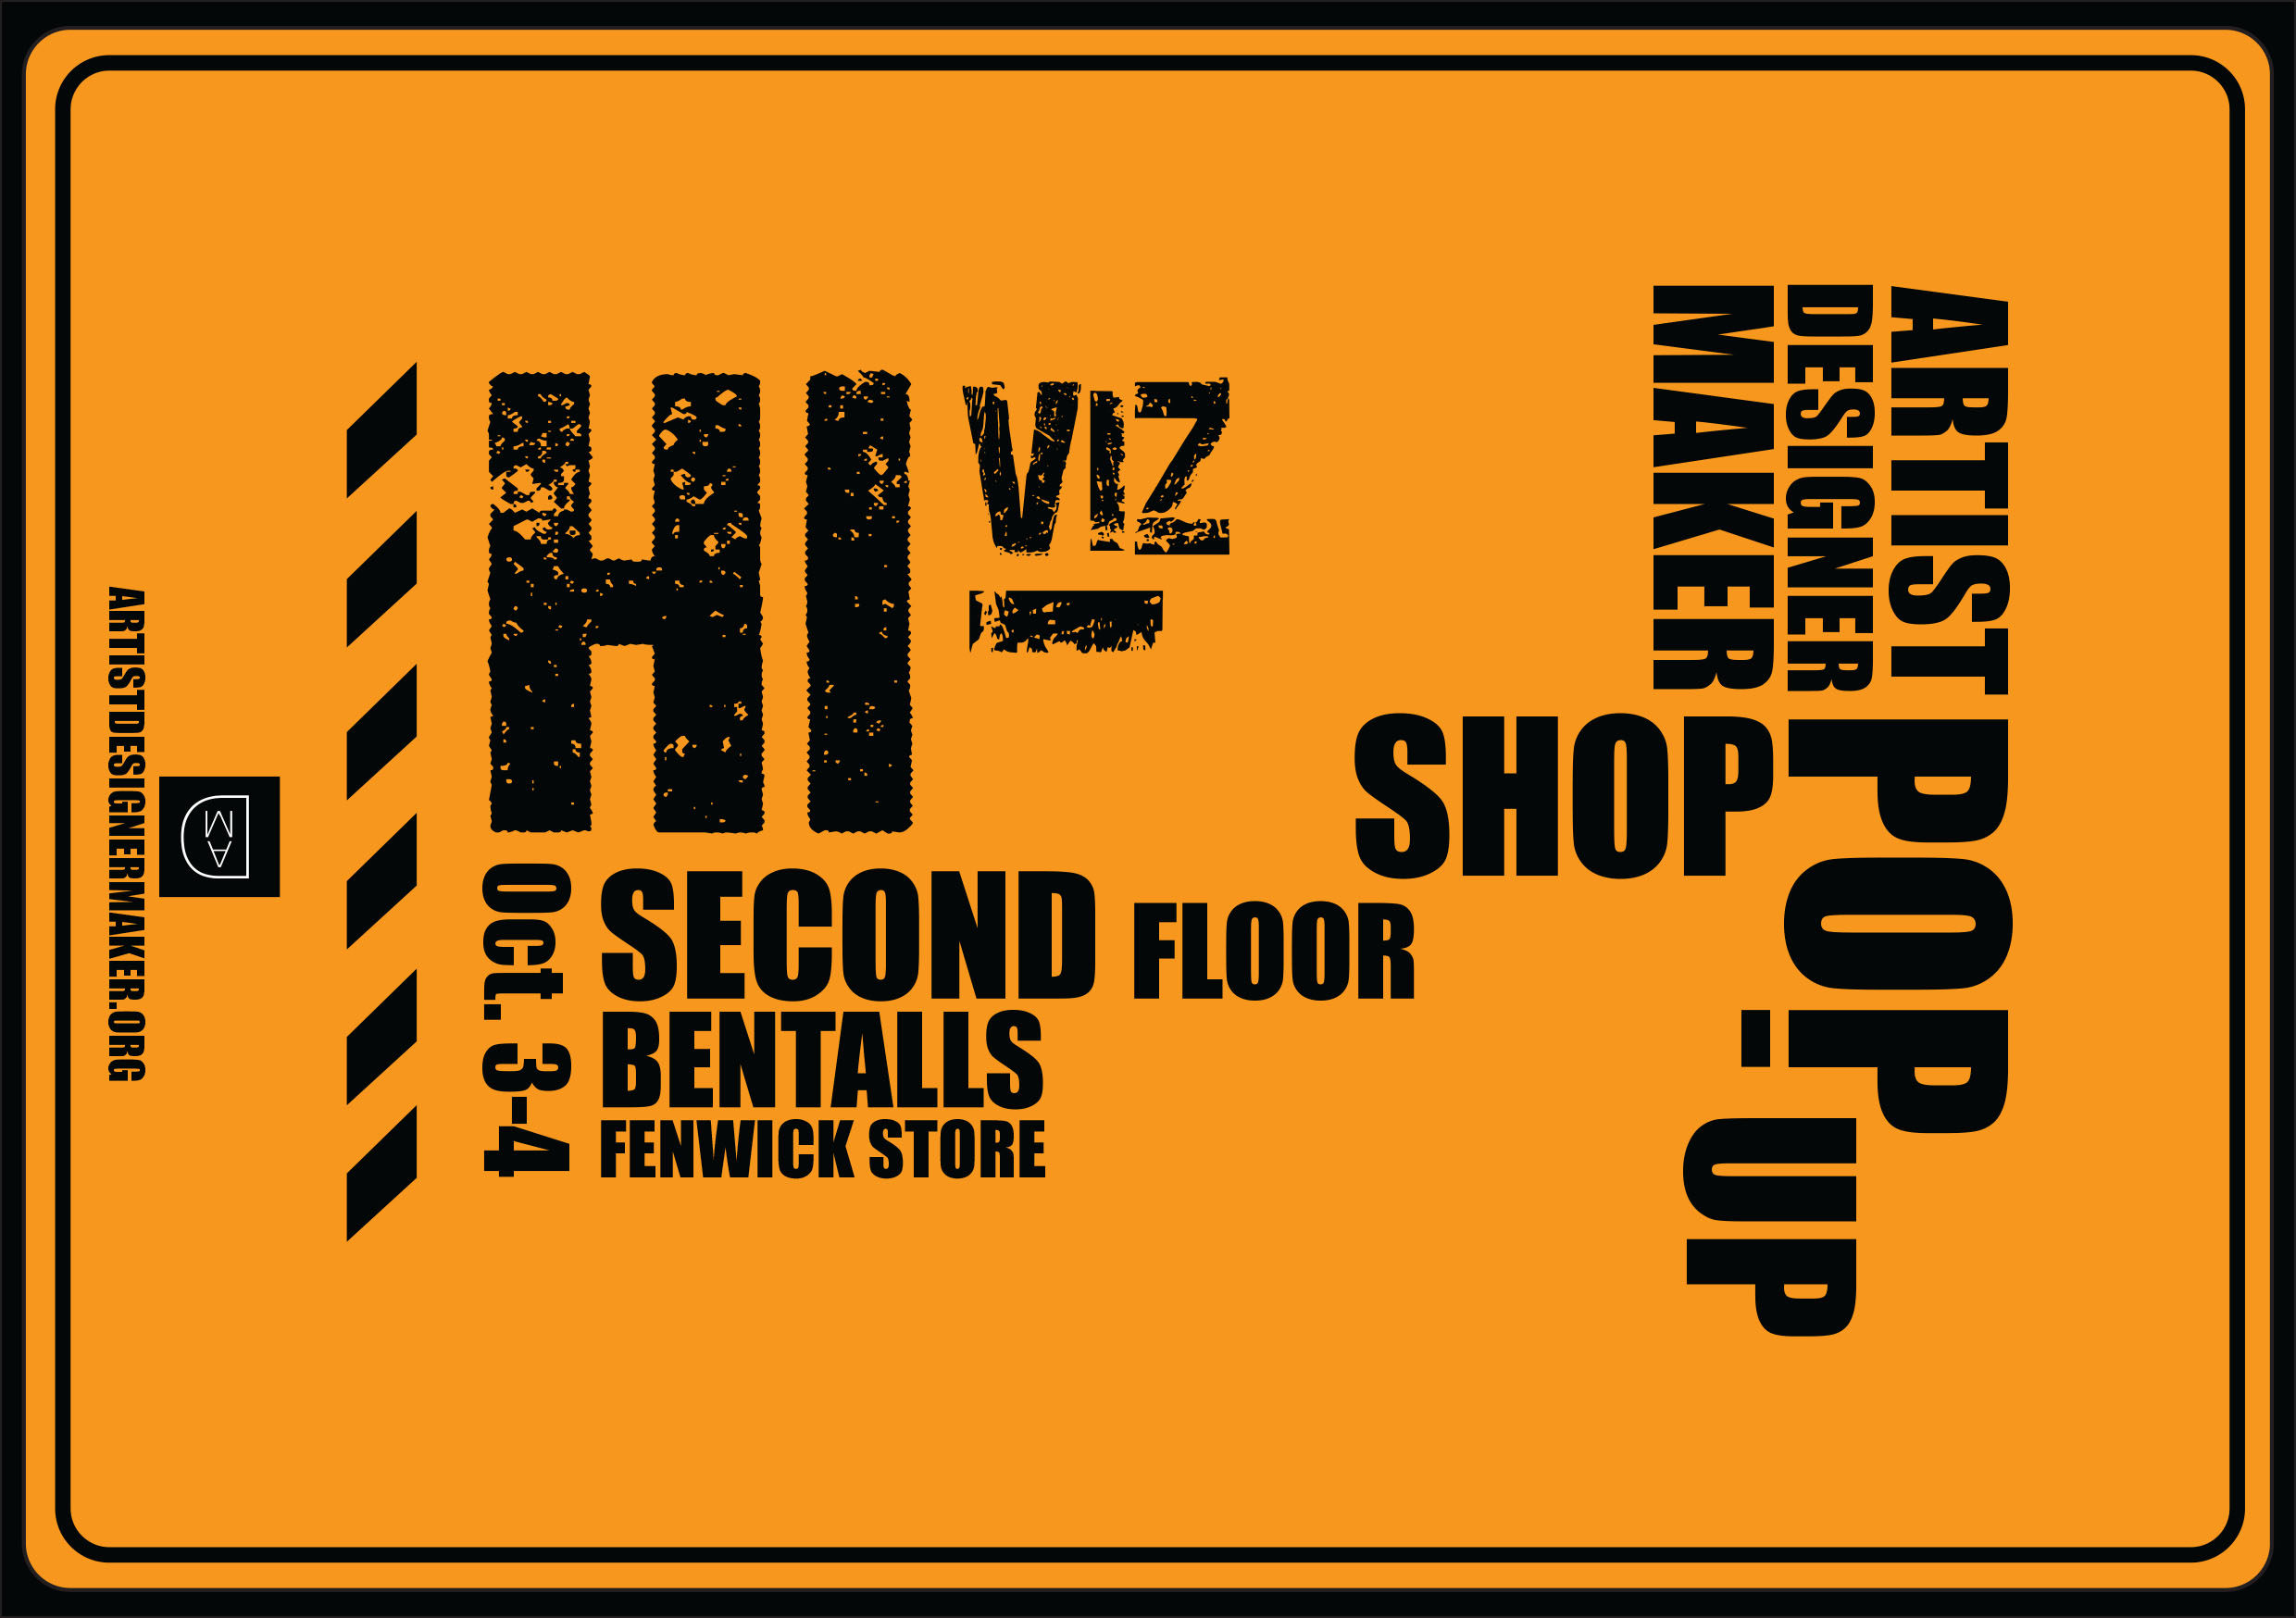 hi vis pop up shop coming this weekend opens friday 2nd october